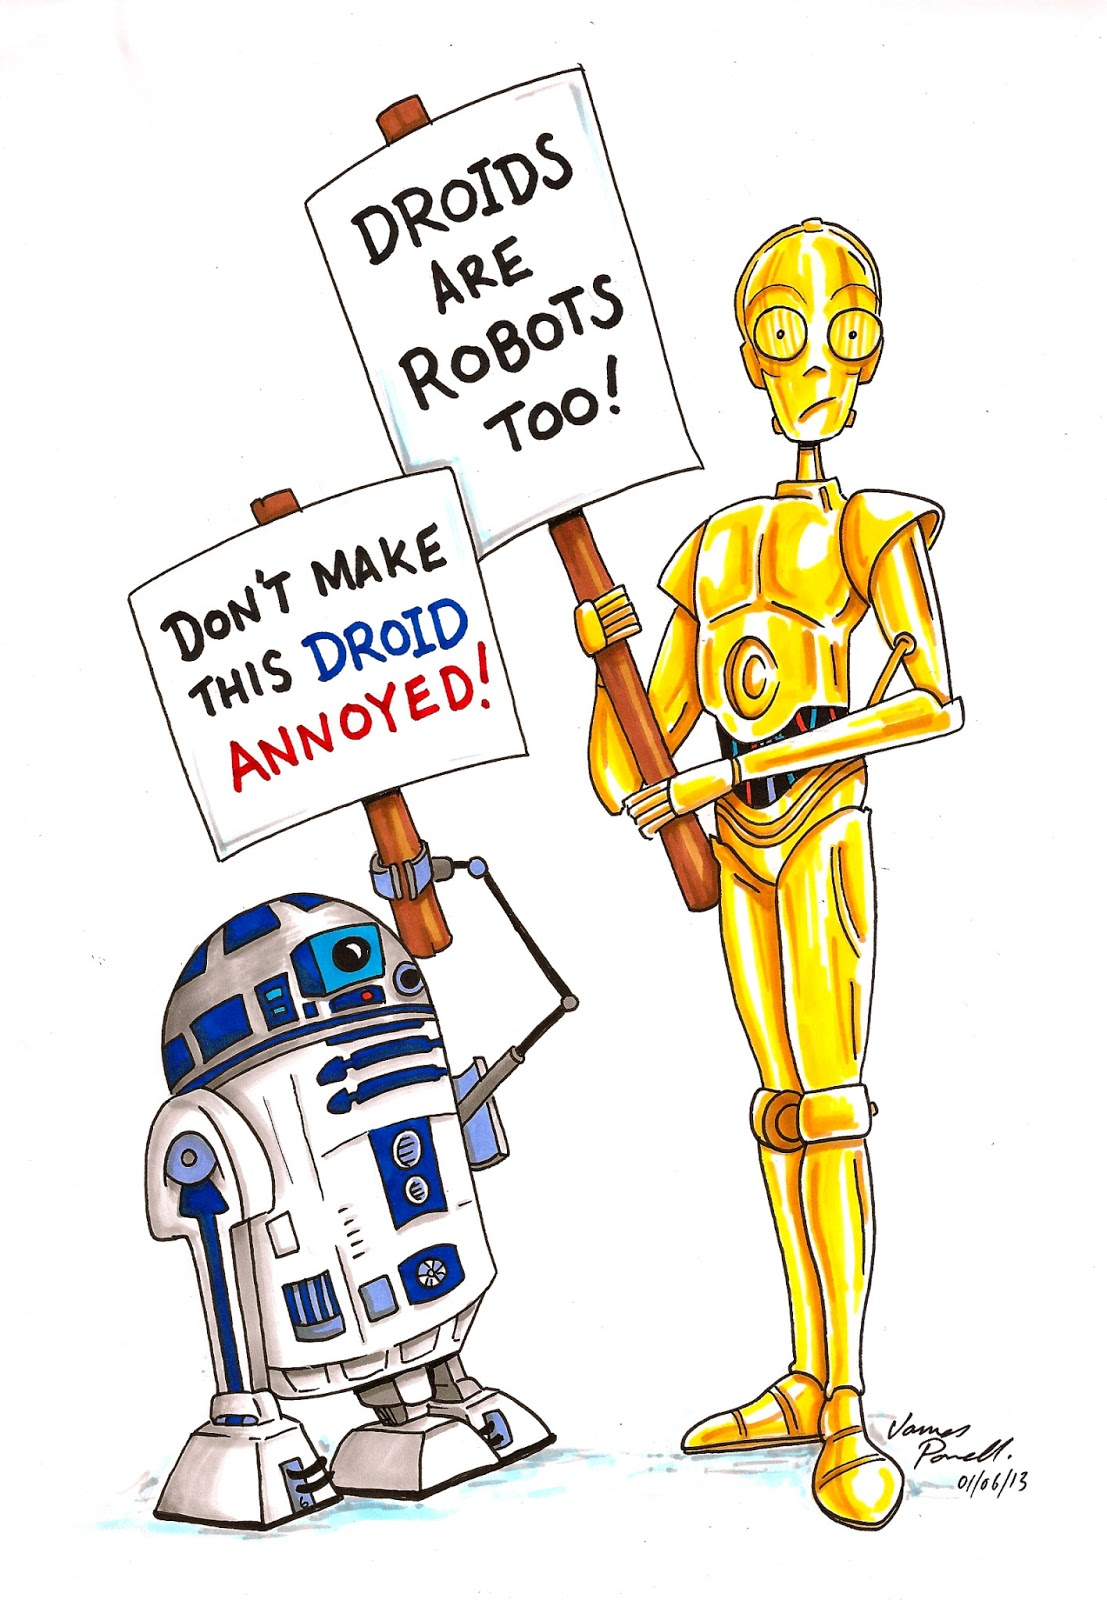 Art stuff by James P Powell: DROIDS are ROBOTS too!